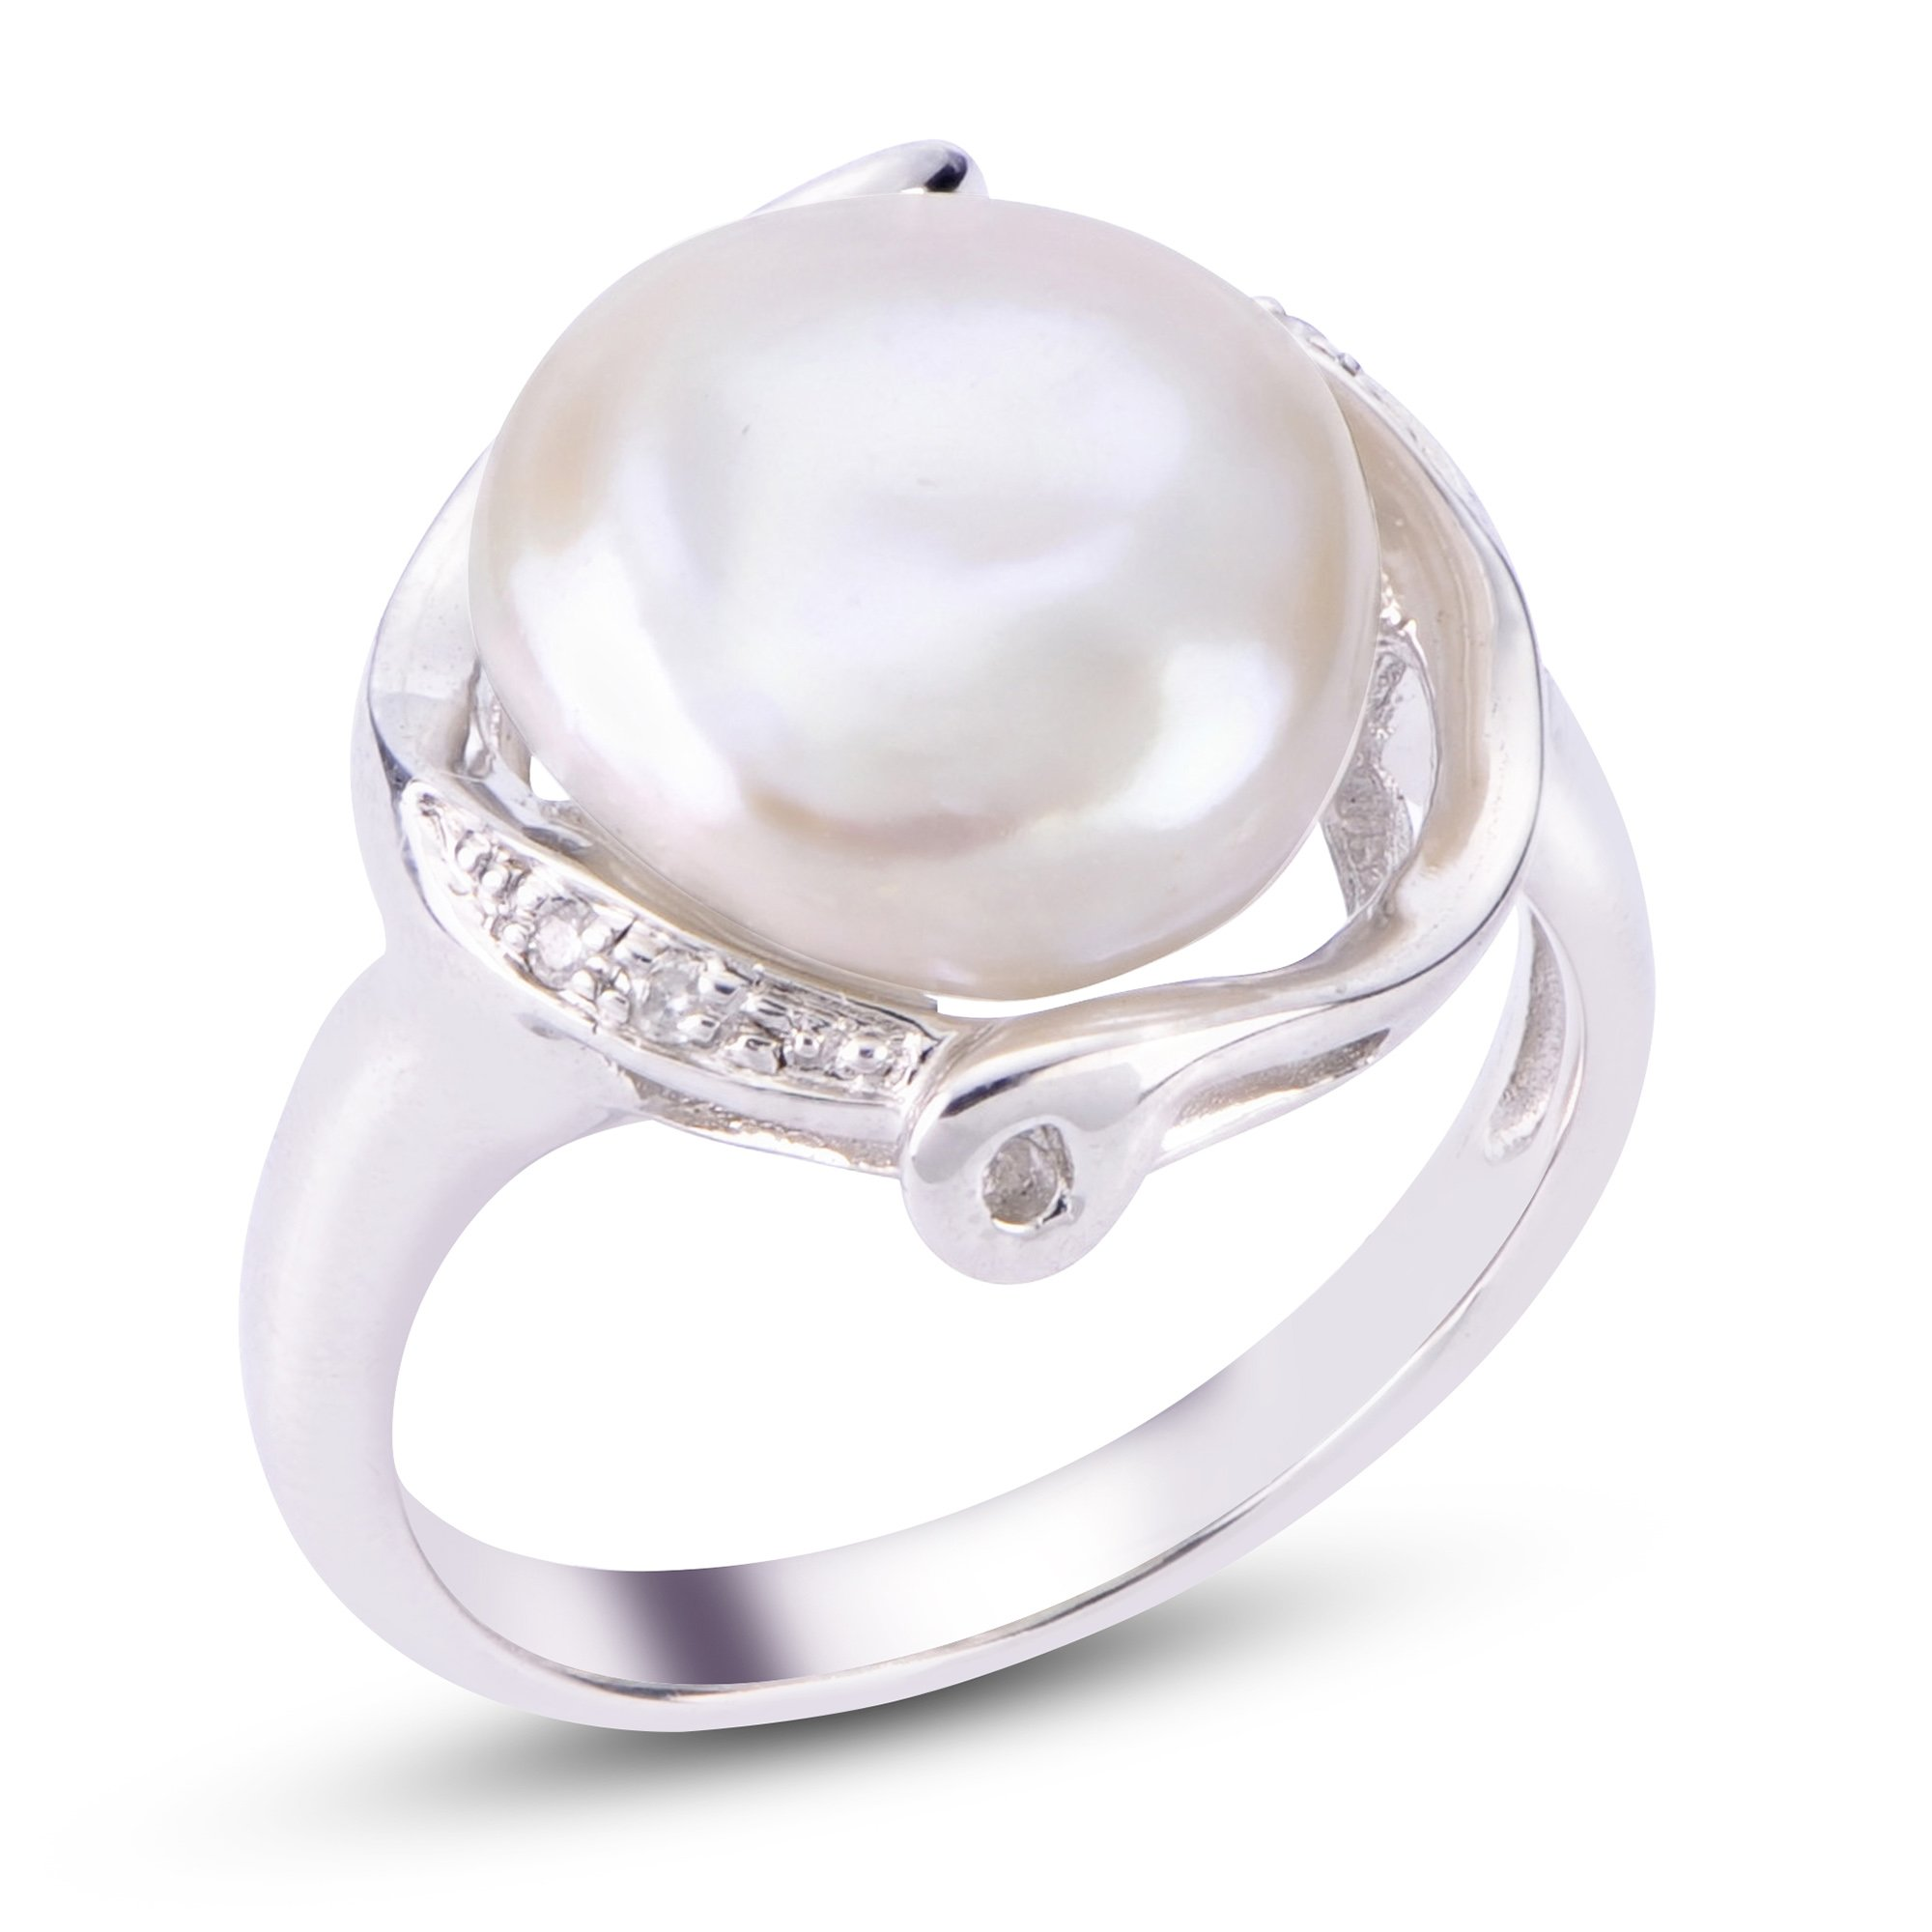 white diamond shipping set watches earring rings for pearl and sterling product today wedding free you silver freshwater ring overstock jewelry pendant pearls